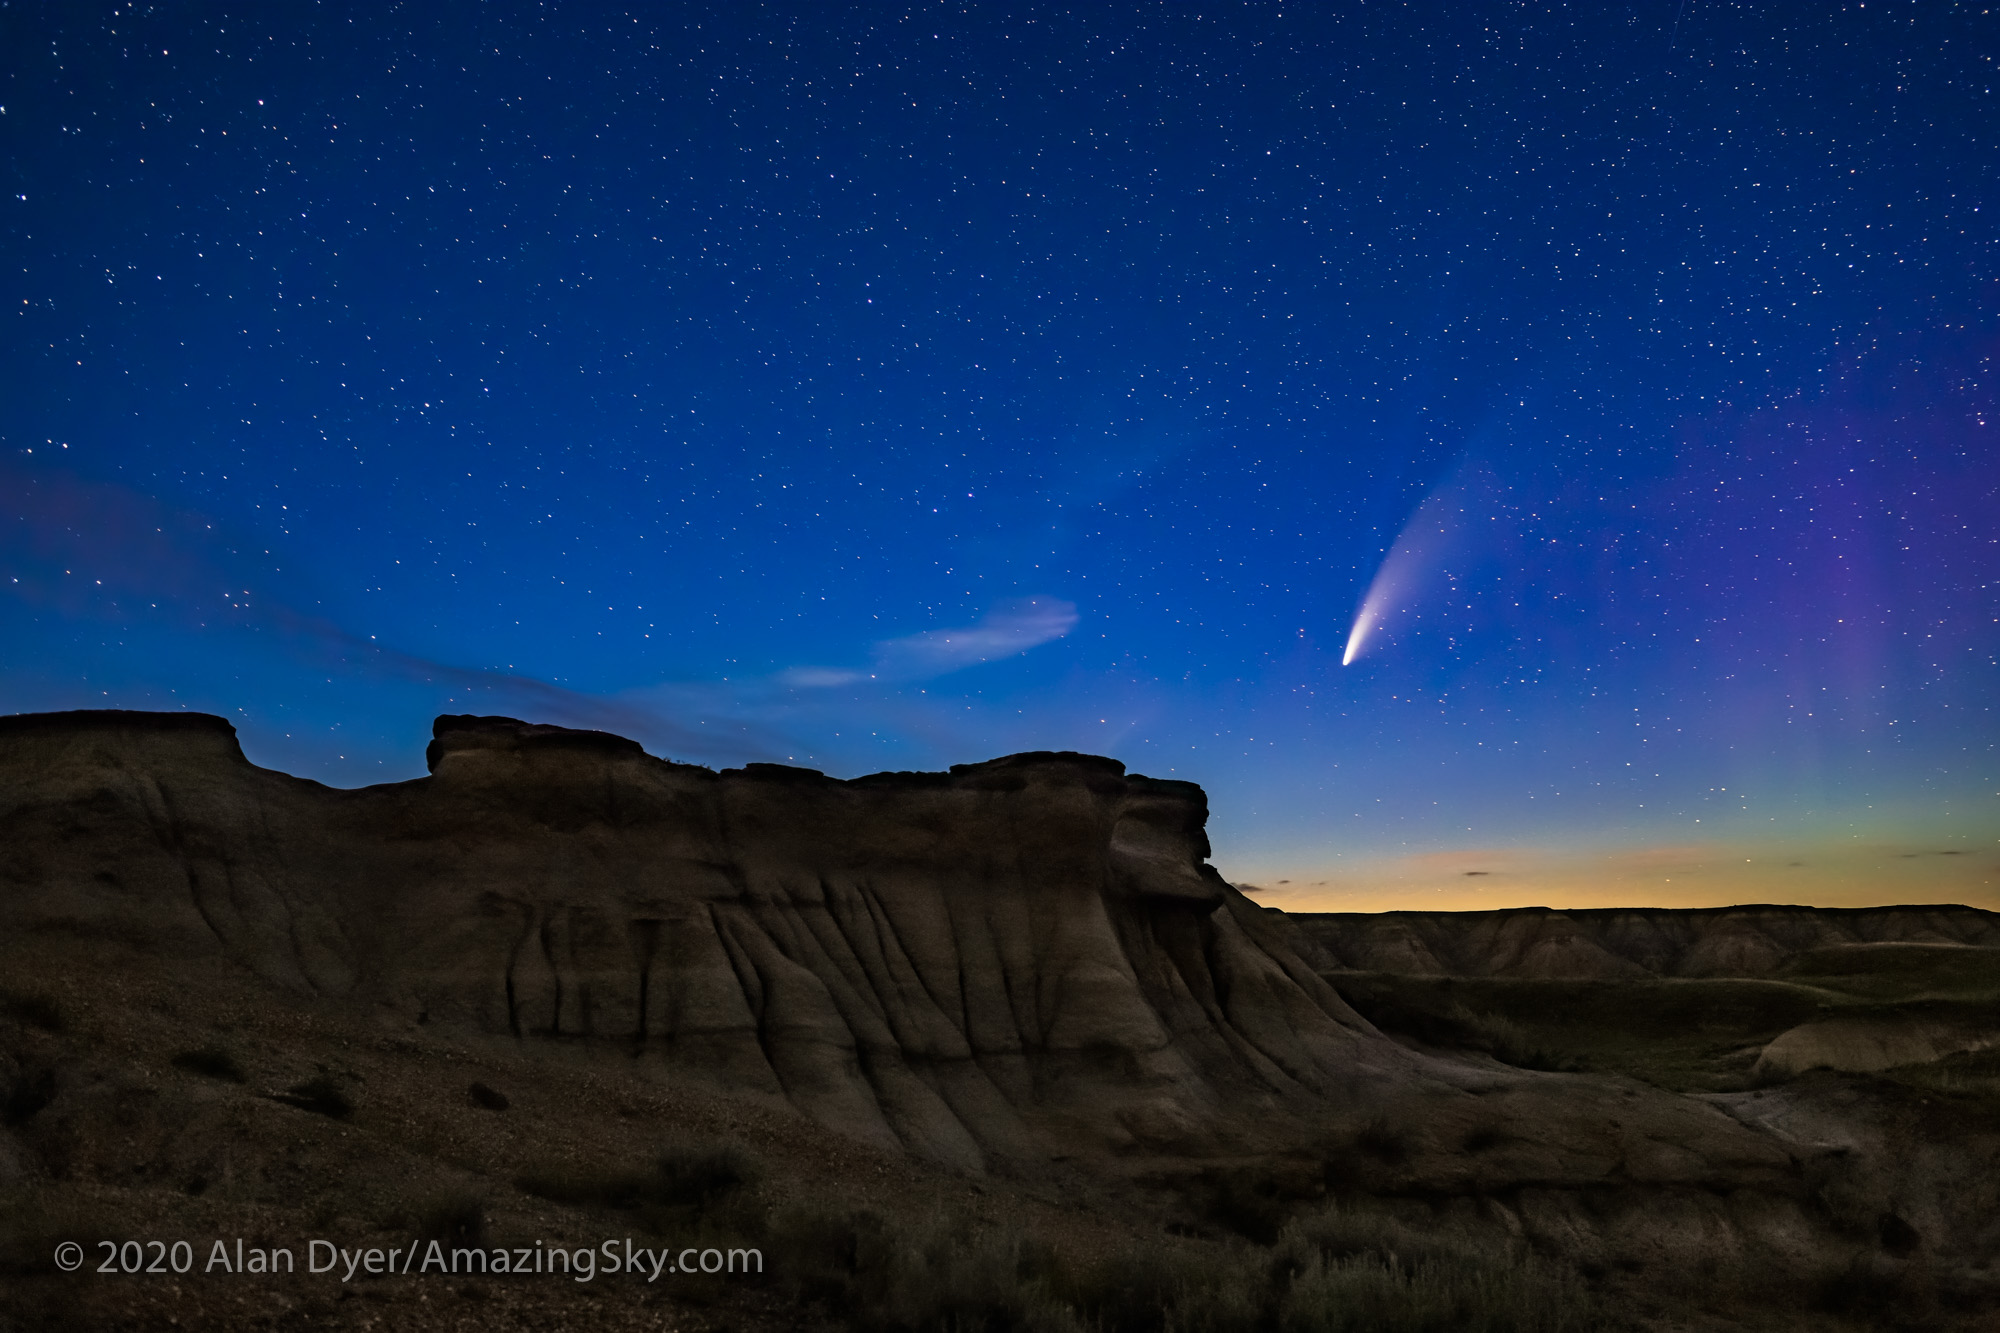 Comet over Hoodoos at Dinosaur Park (July 14, 2020)